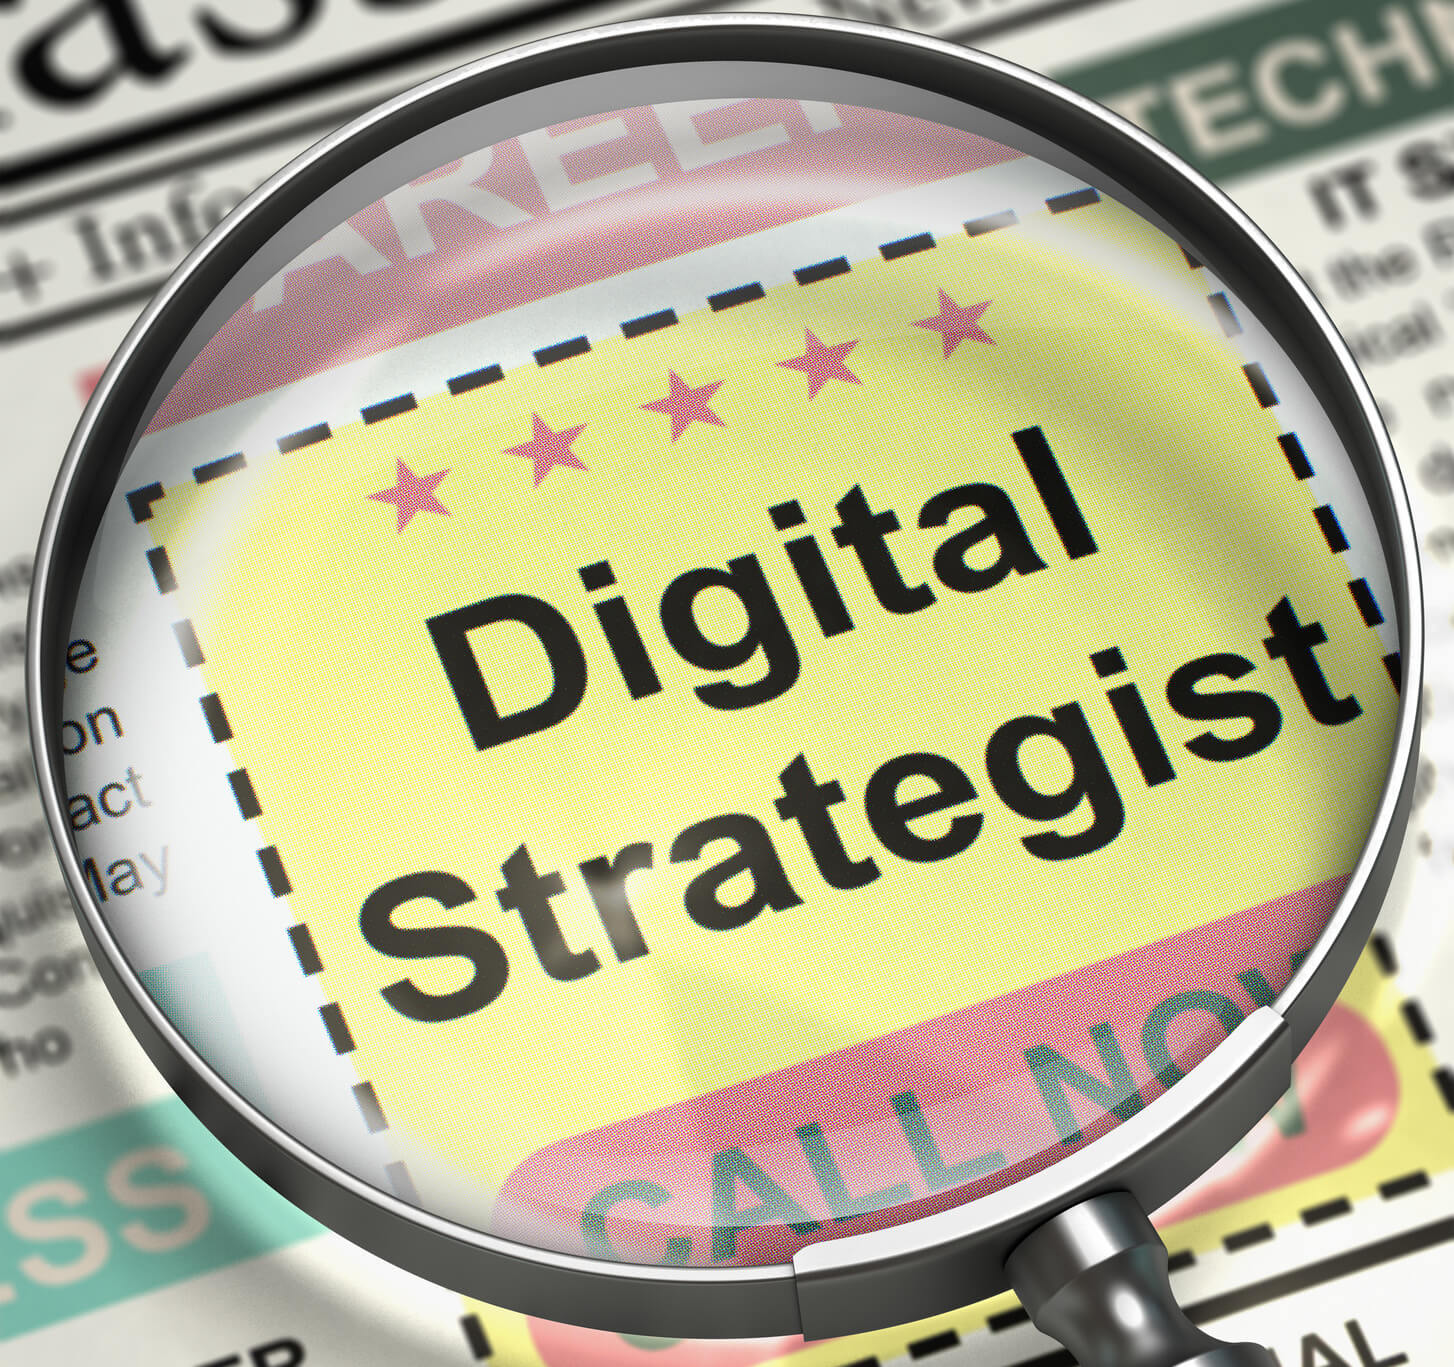 Why You Should Consider Hiring a Digital Strategist